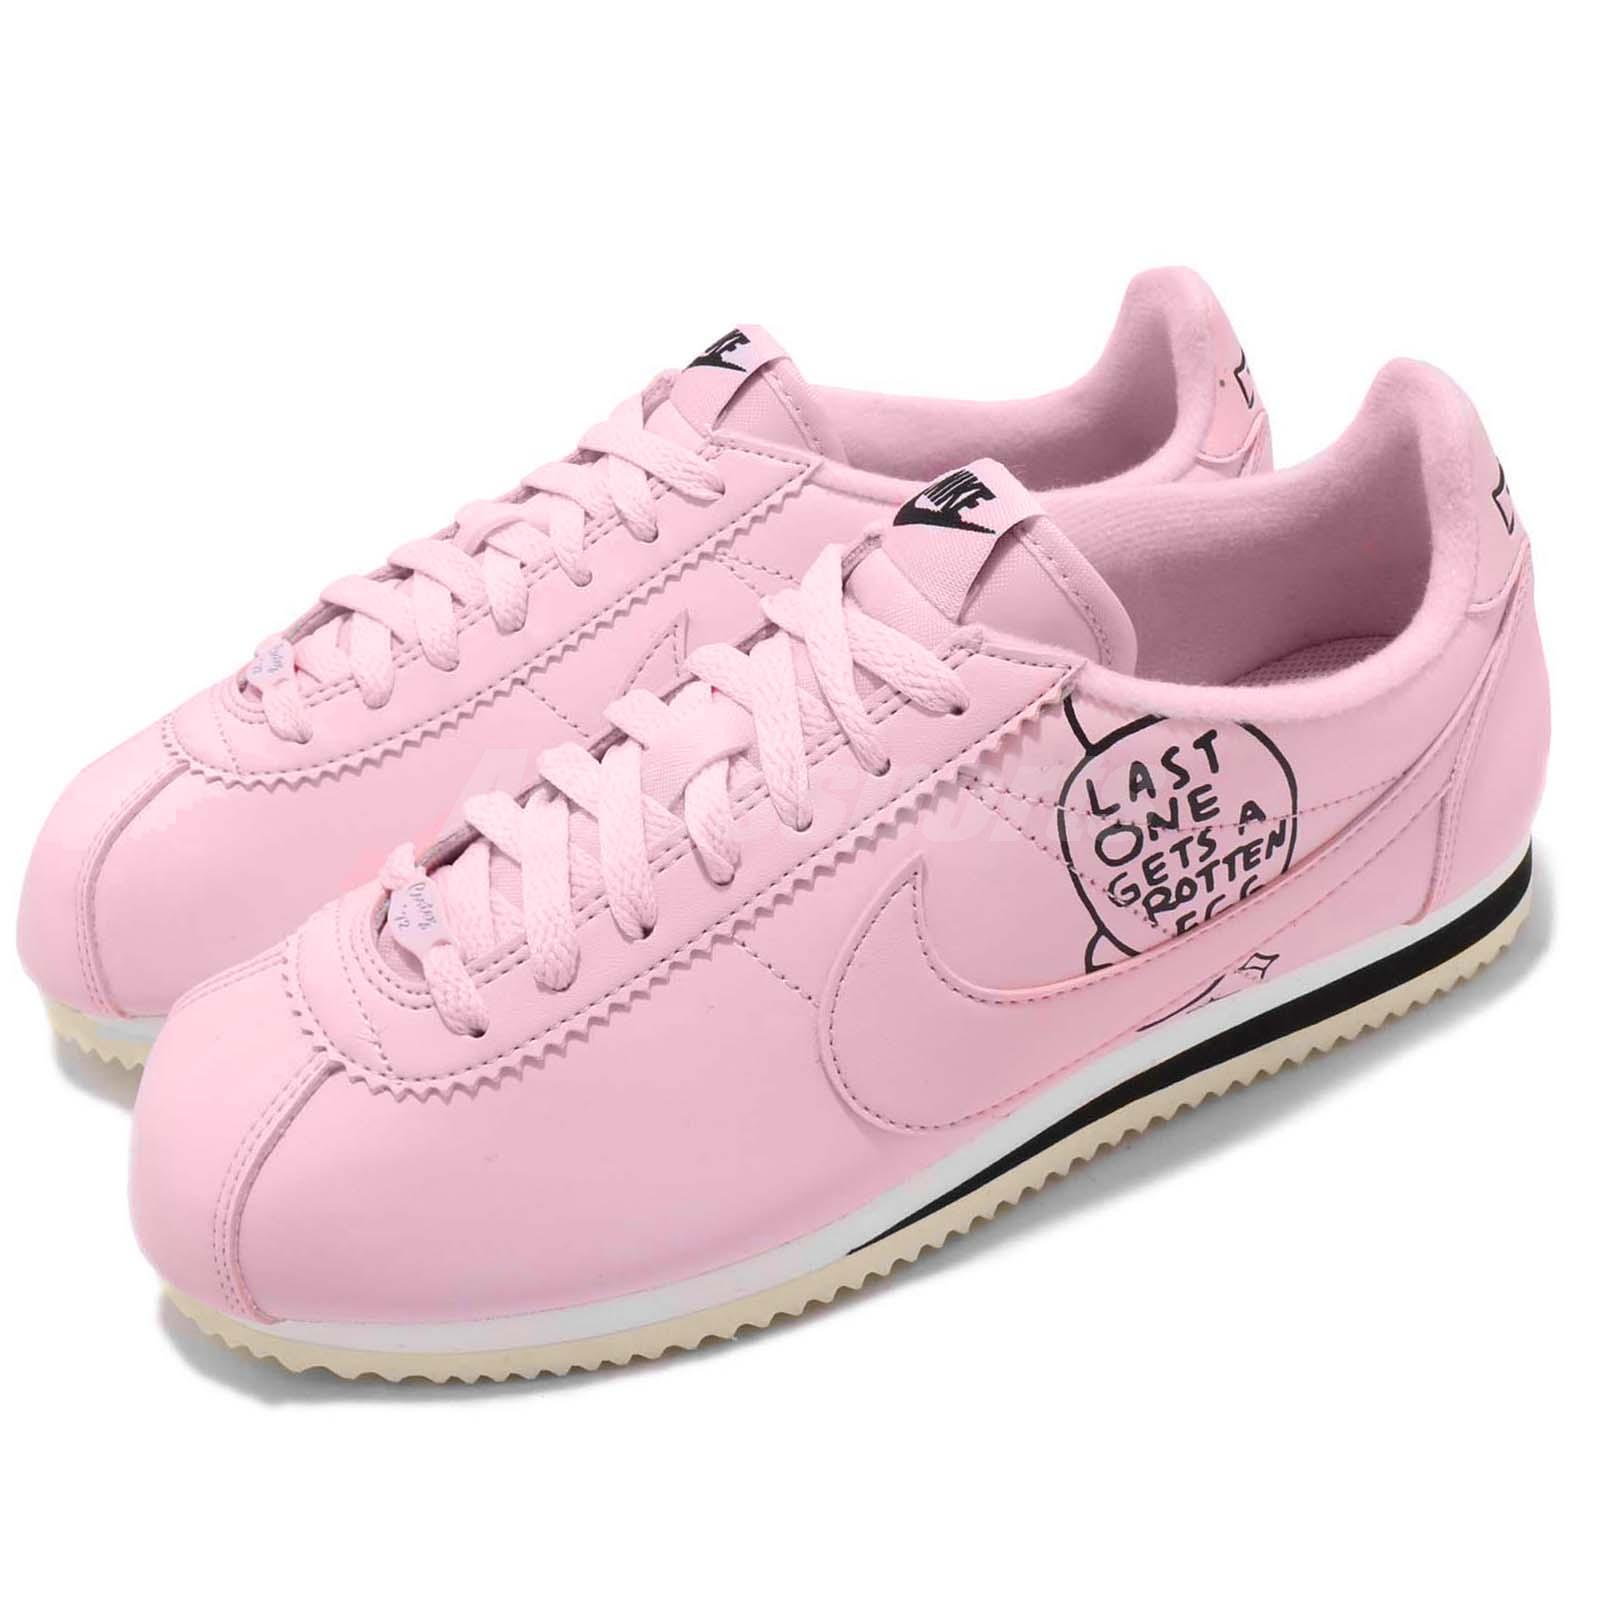 the best attitude 82921 dbc91 Details about Nike Classic Cortez X Nathan Bell Pink Foam Black Mens  Running Shoes BV8165-600